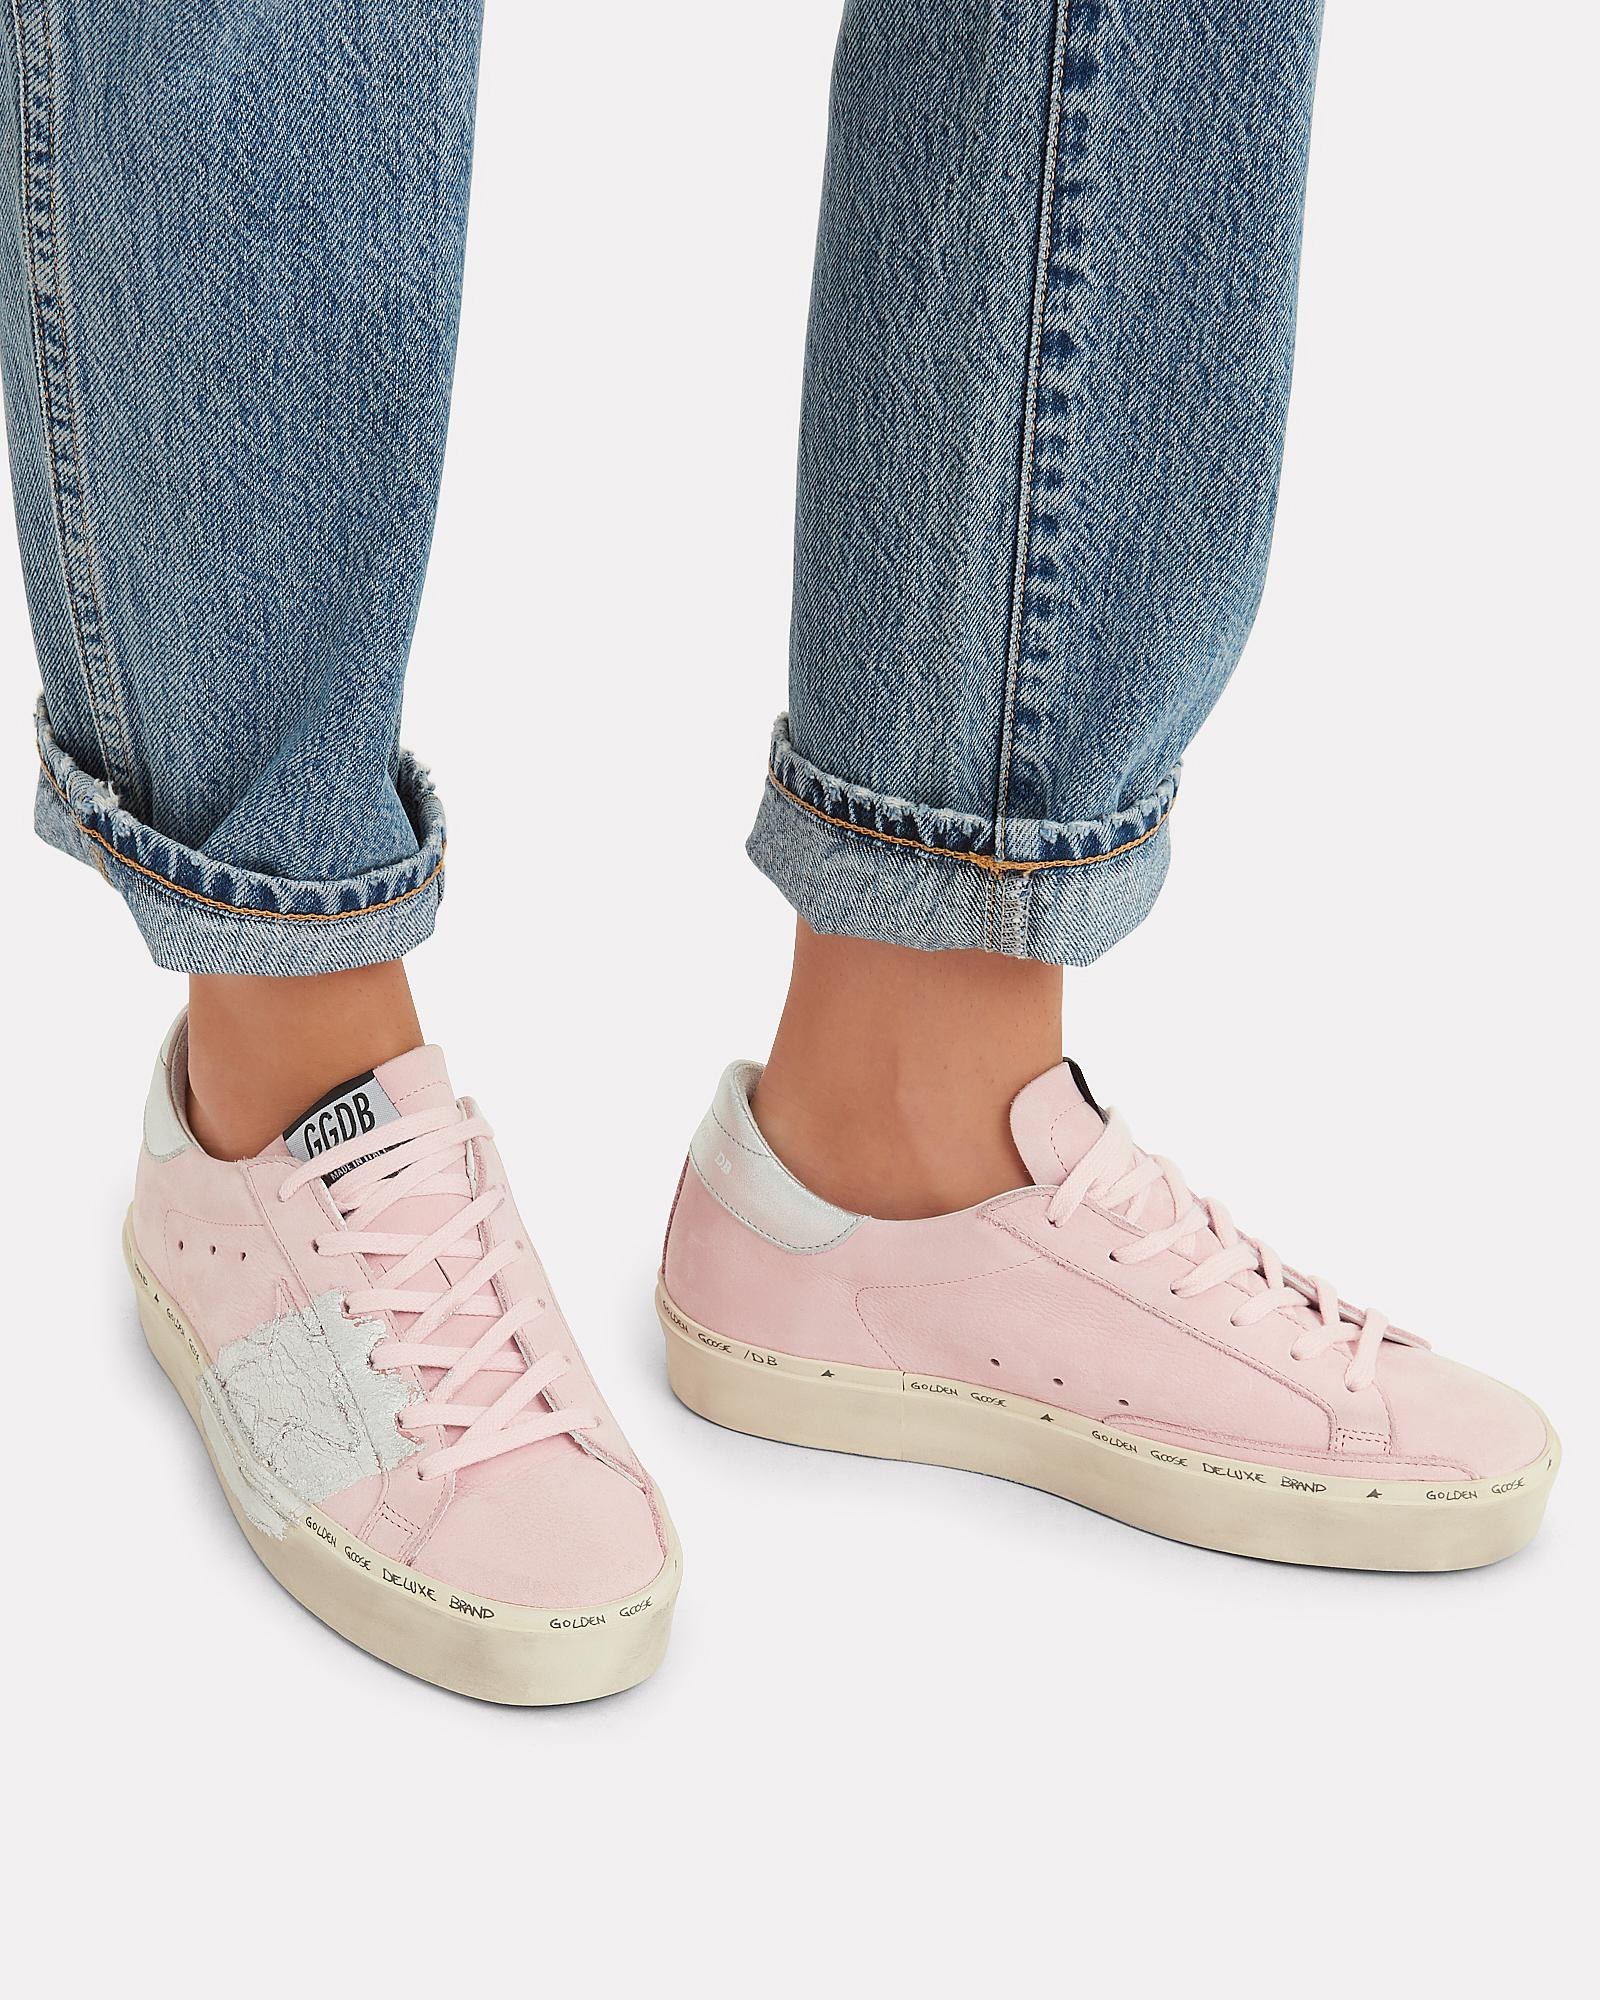 4ec7144efc9c Lyst - Golden Goose Deluxe Brand Hi Star Silver Paint Pink Leather Low-top  Sneakers in Pink - Save 21%